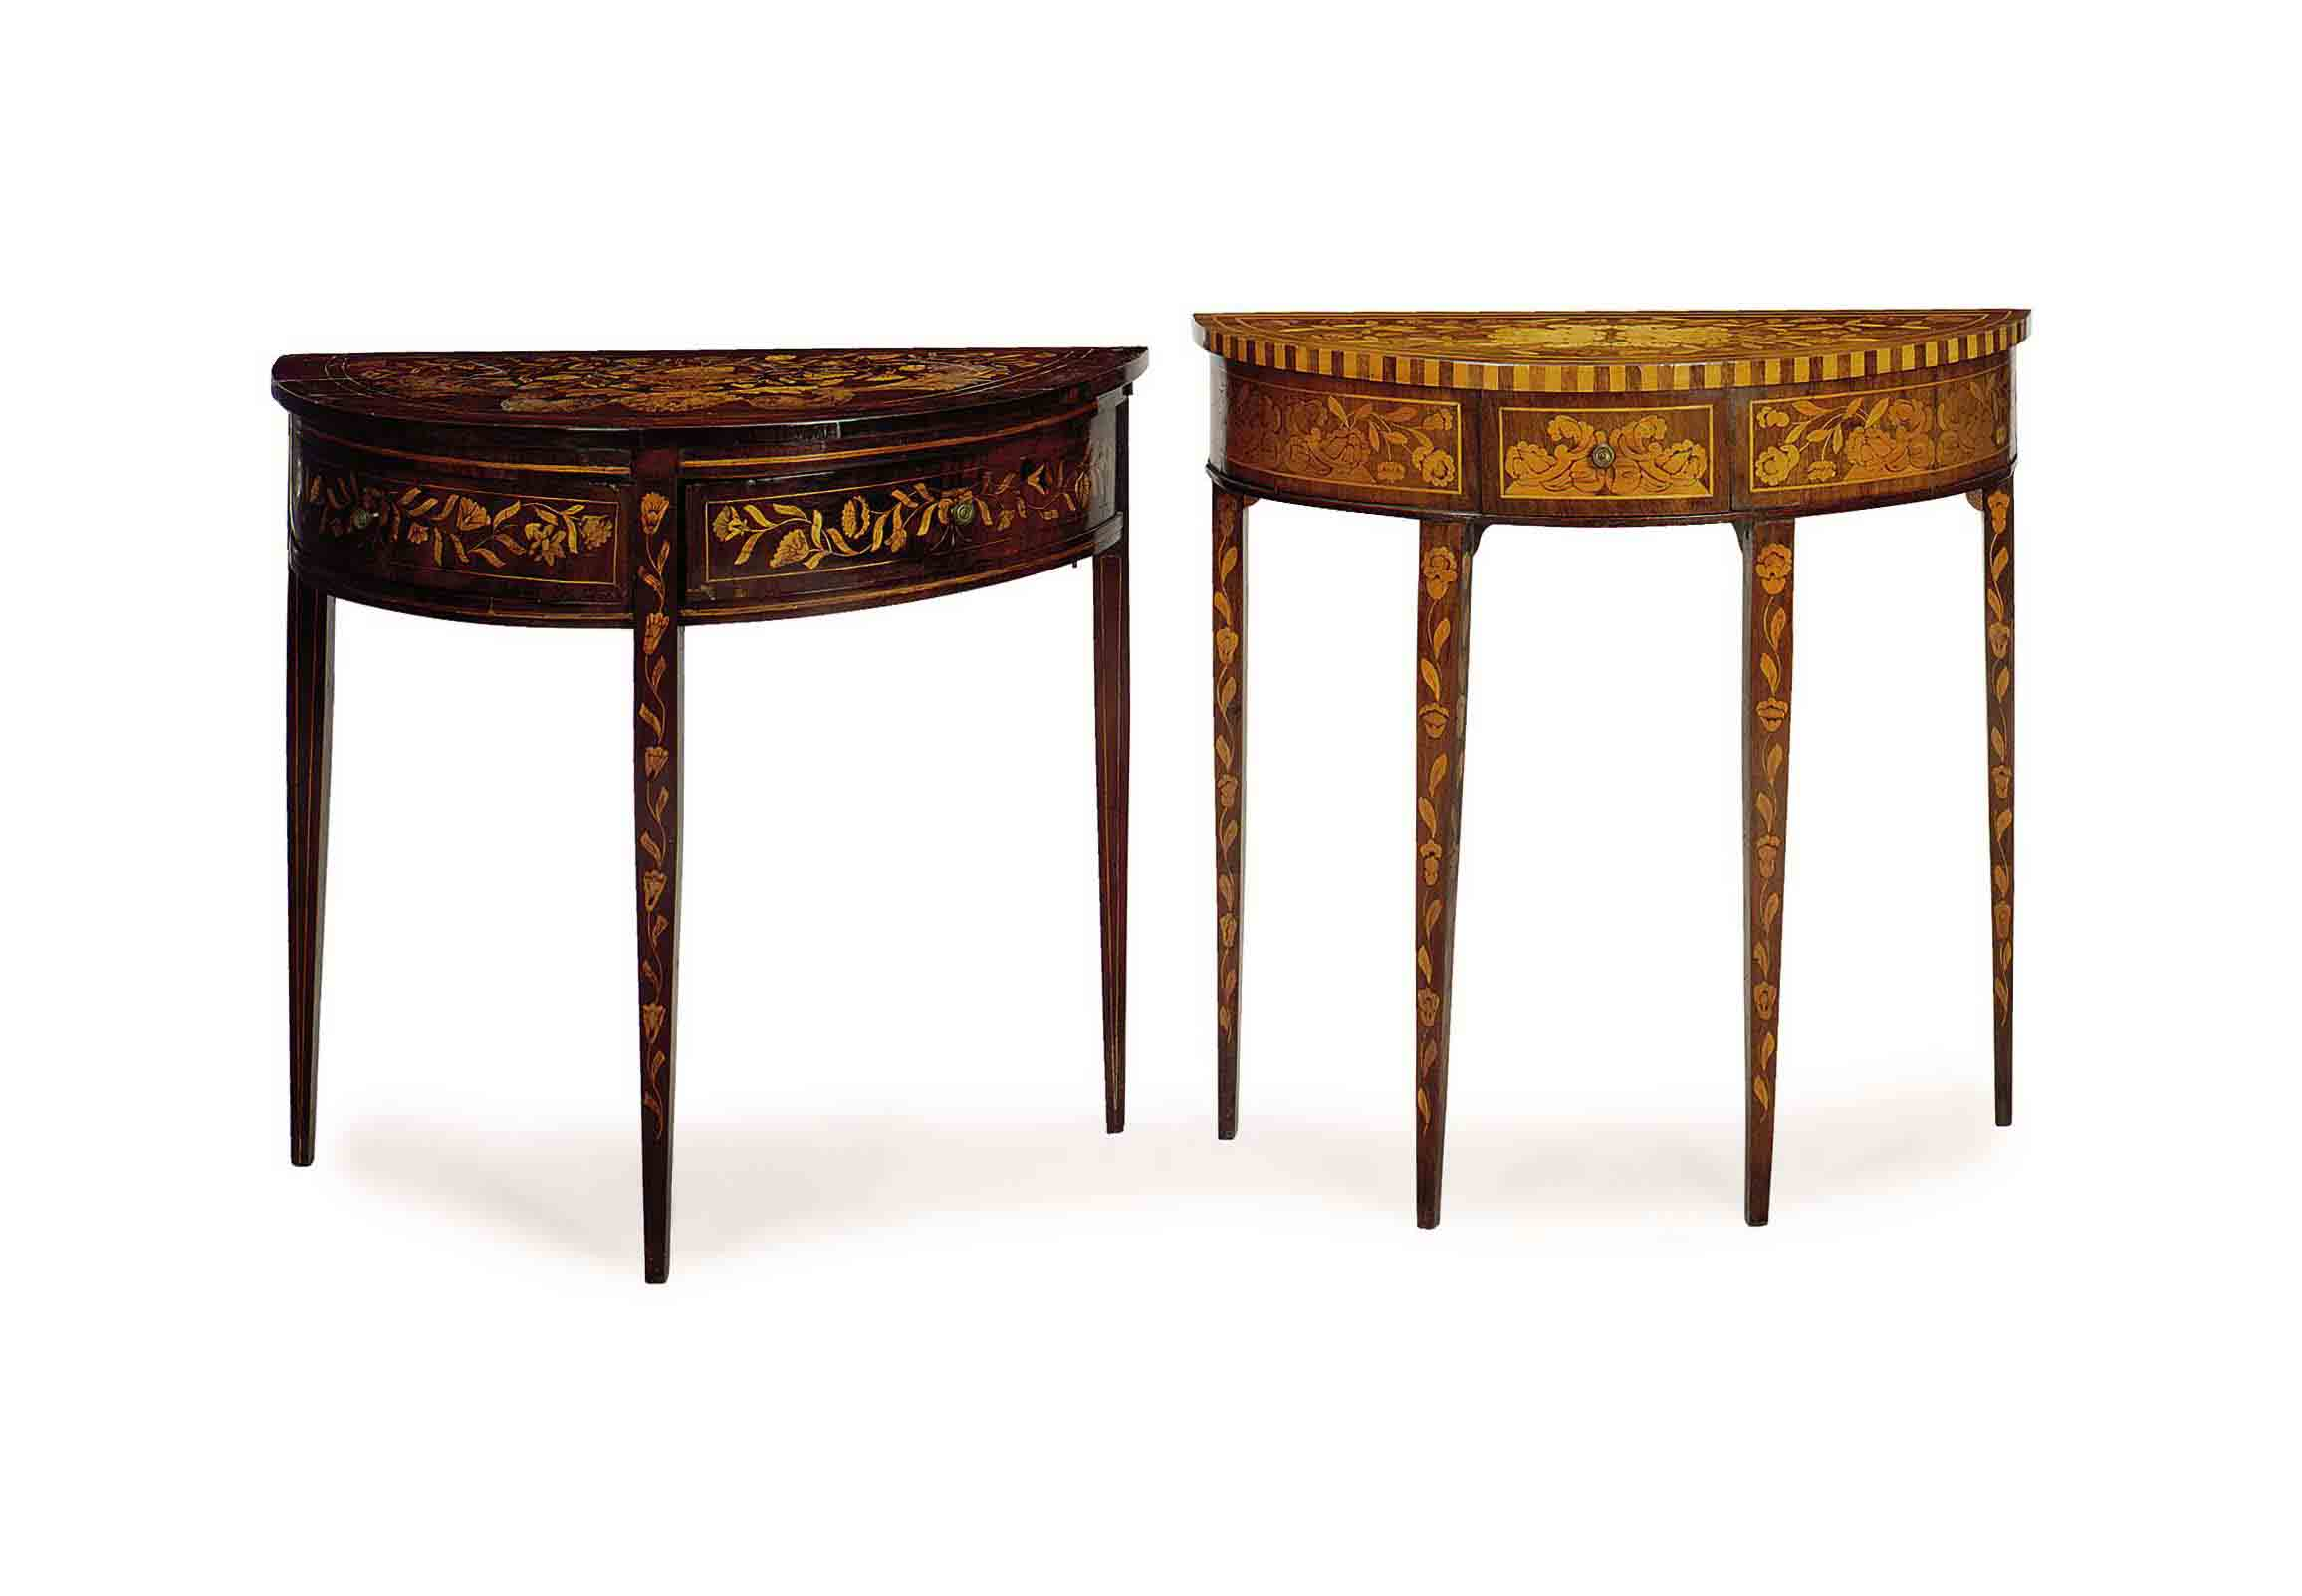 TWO DUTCH MARQUETRY MAHOGANY D